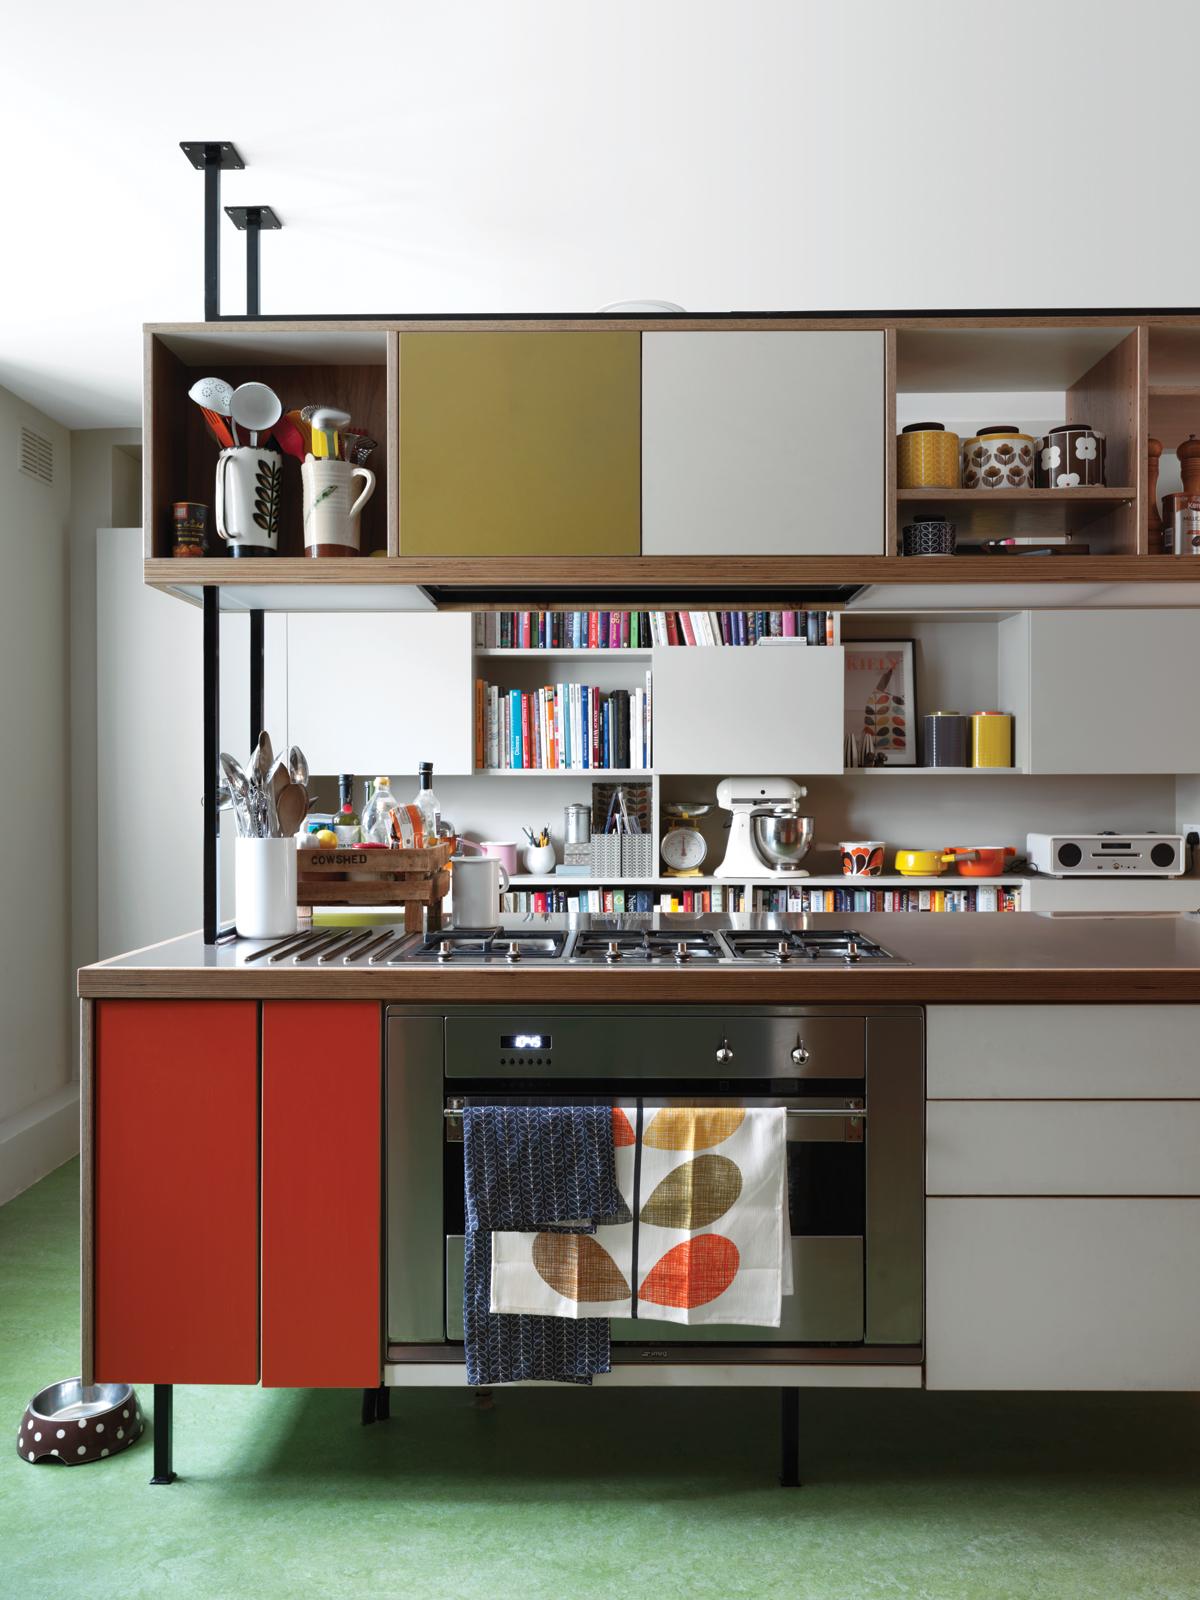 Kiely and architect Maxim Laroussi designed the kitchen unit.